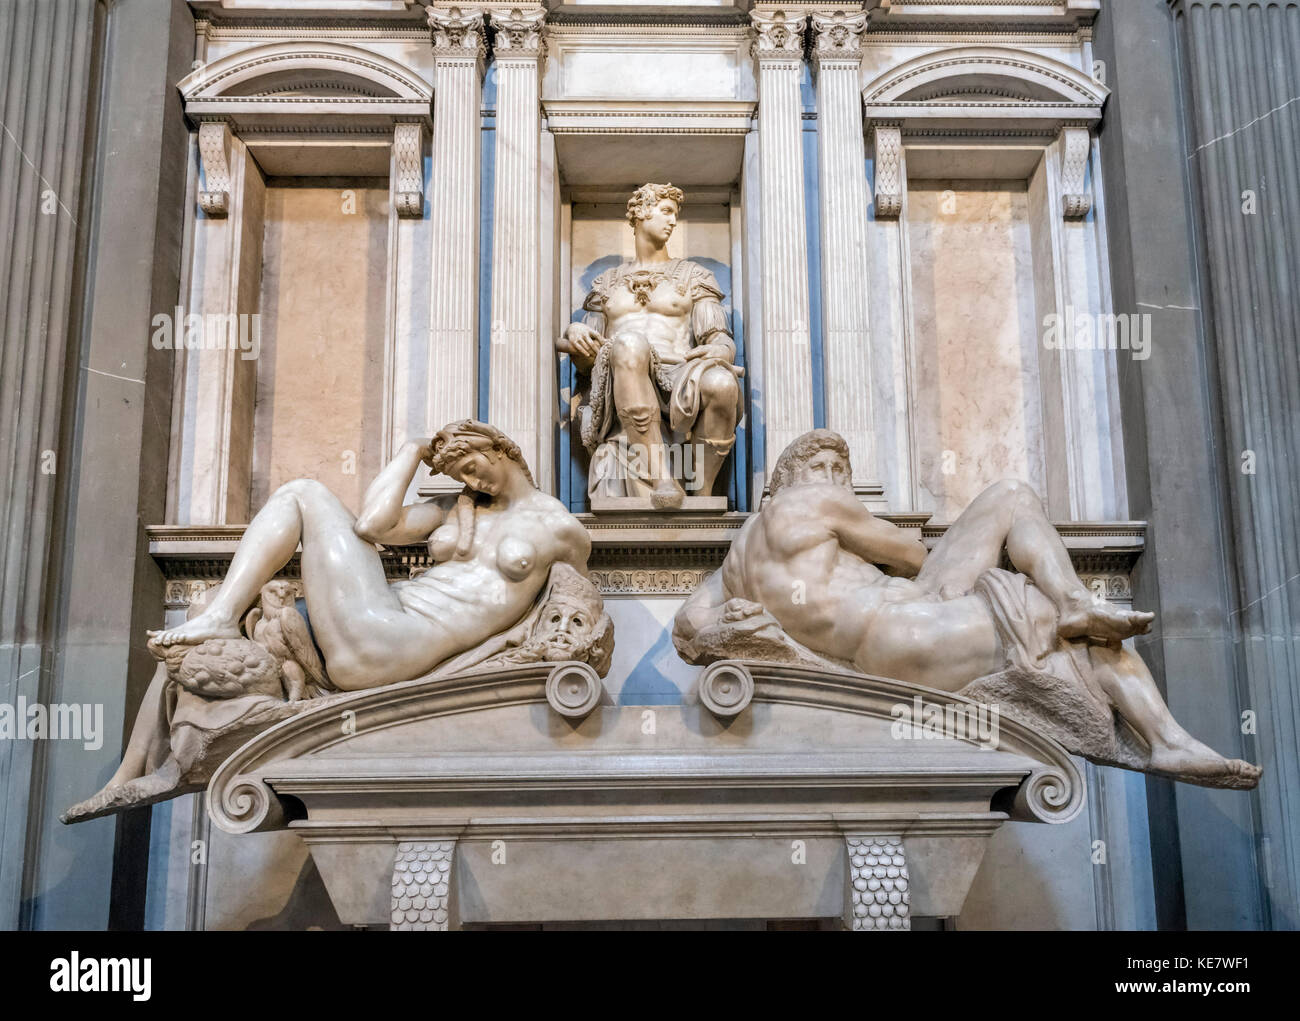 The tomb of Giuliano, Duke of Nemours by Michelangelo, Cappelle Medicee, Church of San Lorenzo, Florence, Italy. - Stock Image